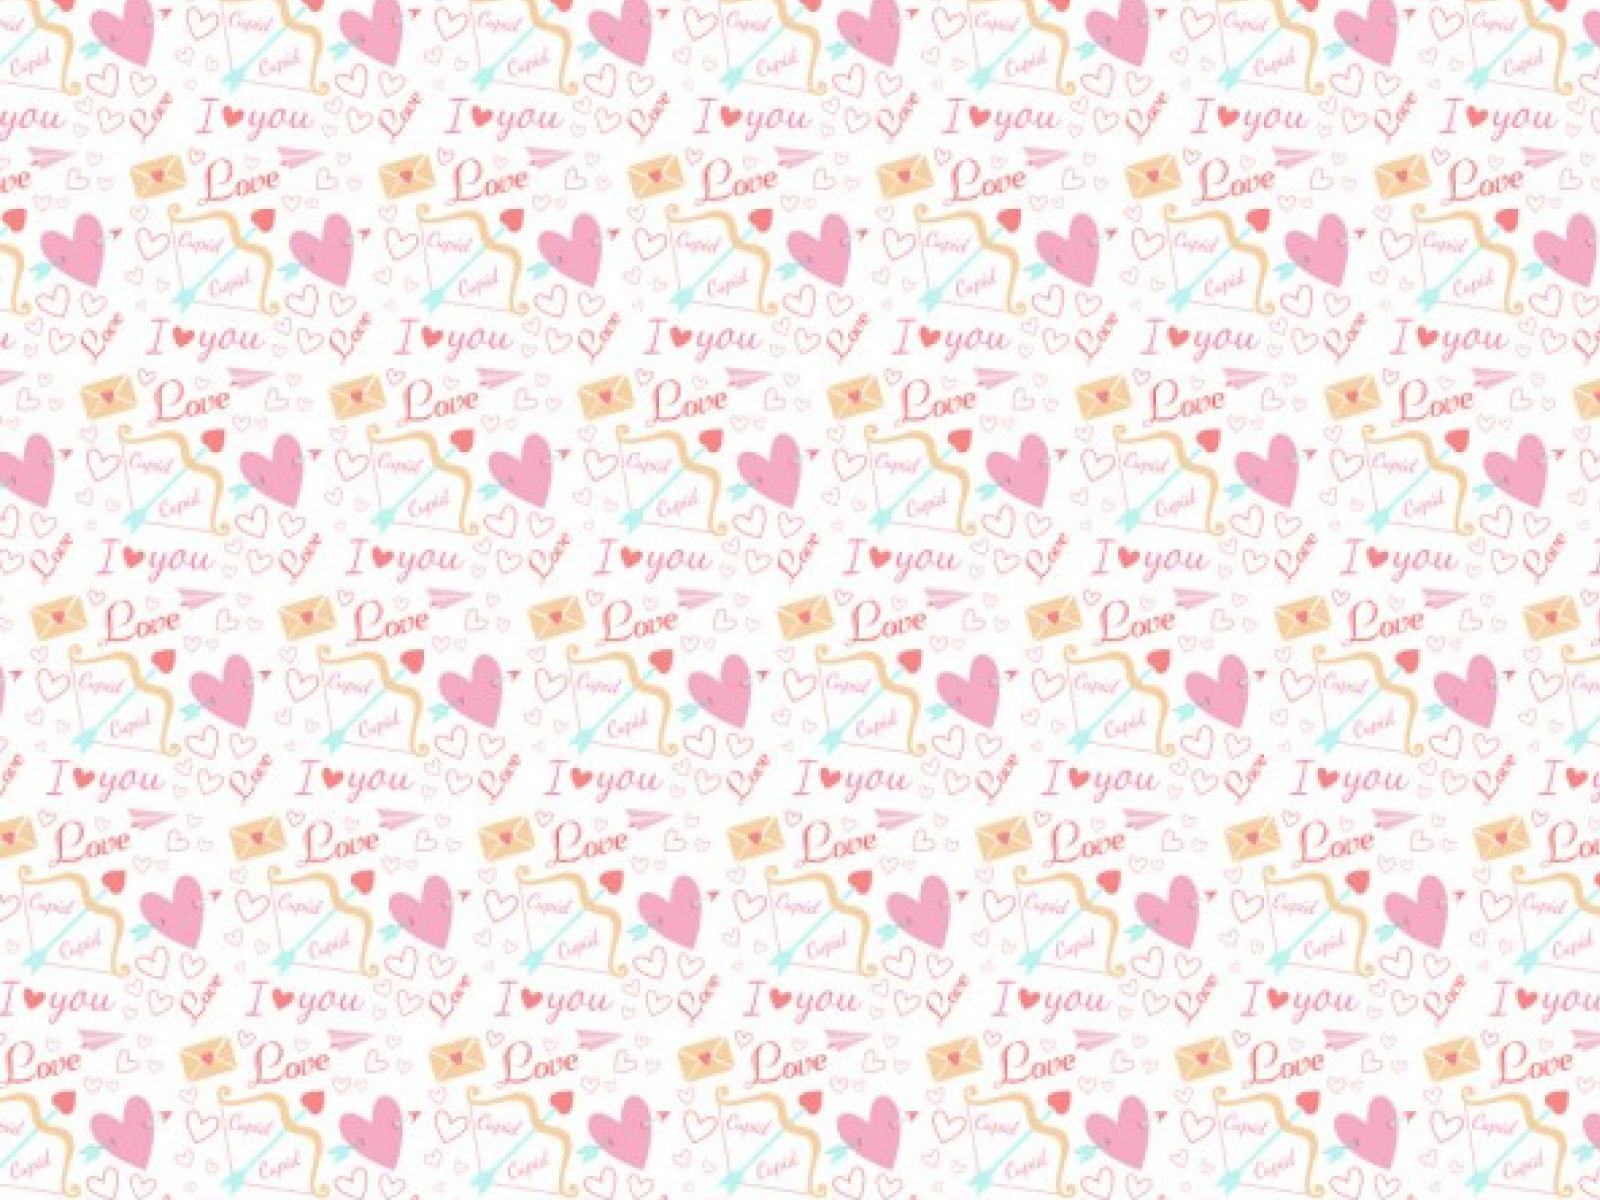 Valentine Hearts PPT Backgrounds